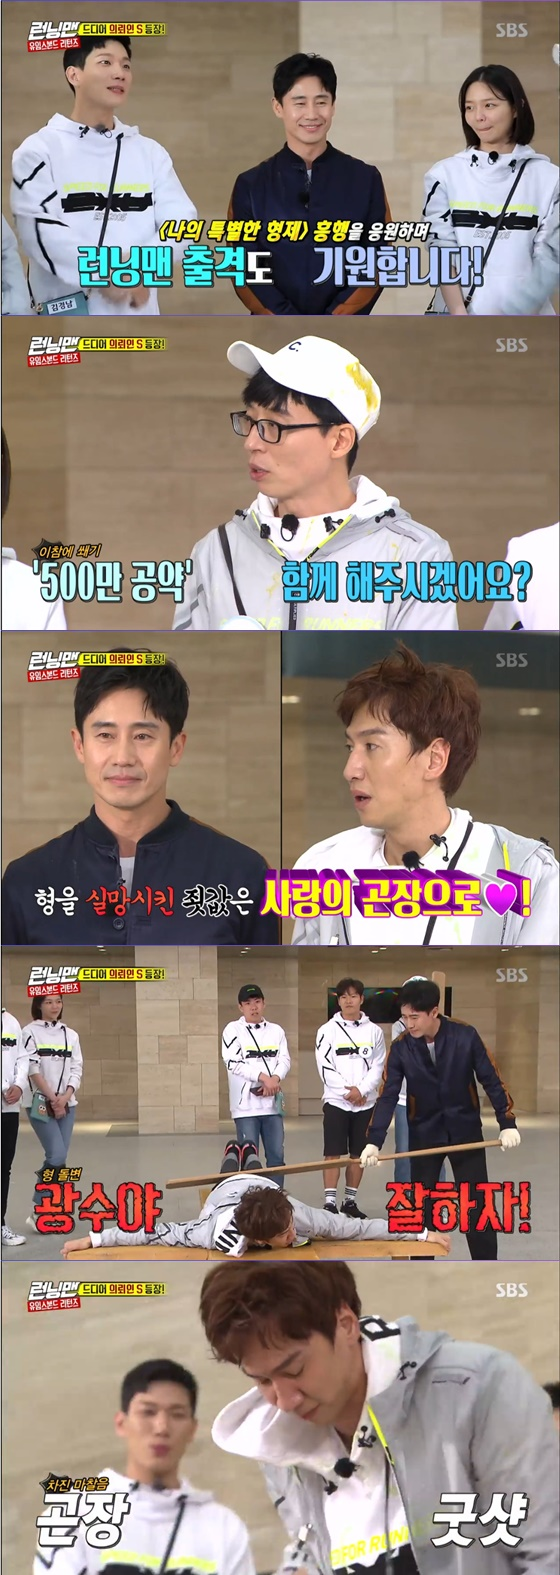 <p>Running Manactor Lee Kwang-Soo are members in front of Shin Ha-kyun in the cudgel hit.</p><p>28 days afternoon broadcast SBS art program Running ManLee Kwang-Soo is Shin Ha-kyun of the week received a Spy role.</p><p>If this options wins you the prize of 1 billion won to fail, you alone make the rules under the conditions given.</p><p>Secret Spy role and had a Spy the name tag on the water gun right also never dieis to say and noticing and actress Esom of a keen eye, as the identity is revealed.</p><p>Eventually The Mission success, failure in this light that the members in front of Shin Ha-kyun in the cudgel to fit the punishment received.</p><p>Shin Ha-kyun is a mineral water, well lets saywith this light in power car to cudgel her, and the cudgel in the world that suits all Esom and Kim Kyung-Nam are astonished.</p>